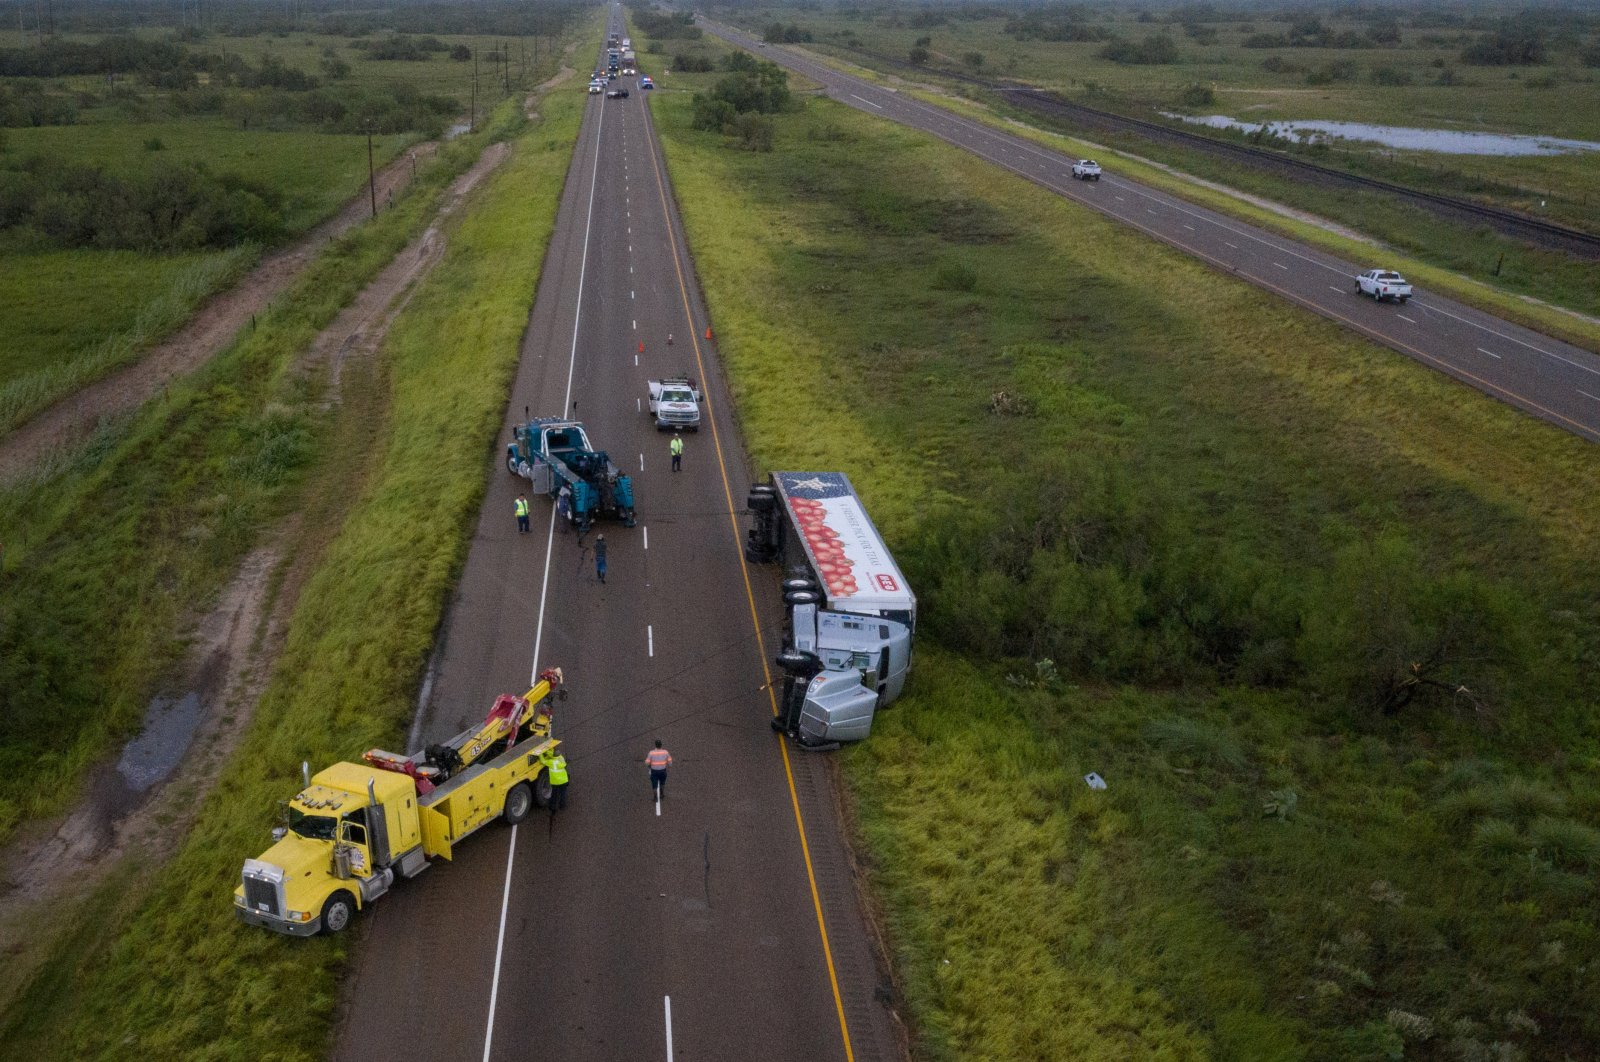 Traffic is halted as tow trucks surround an overturned HEB supermarket truck along U.S. Route 77 in the aftermath of high wind gusts from Hurricane Hanna in Sarita, Texas, U.S., July 26, 2020. (Reuters Photo)